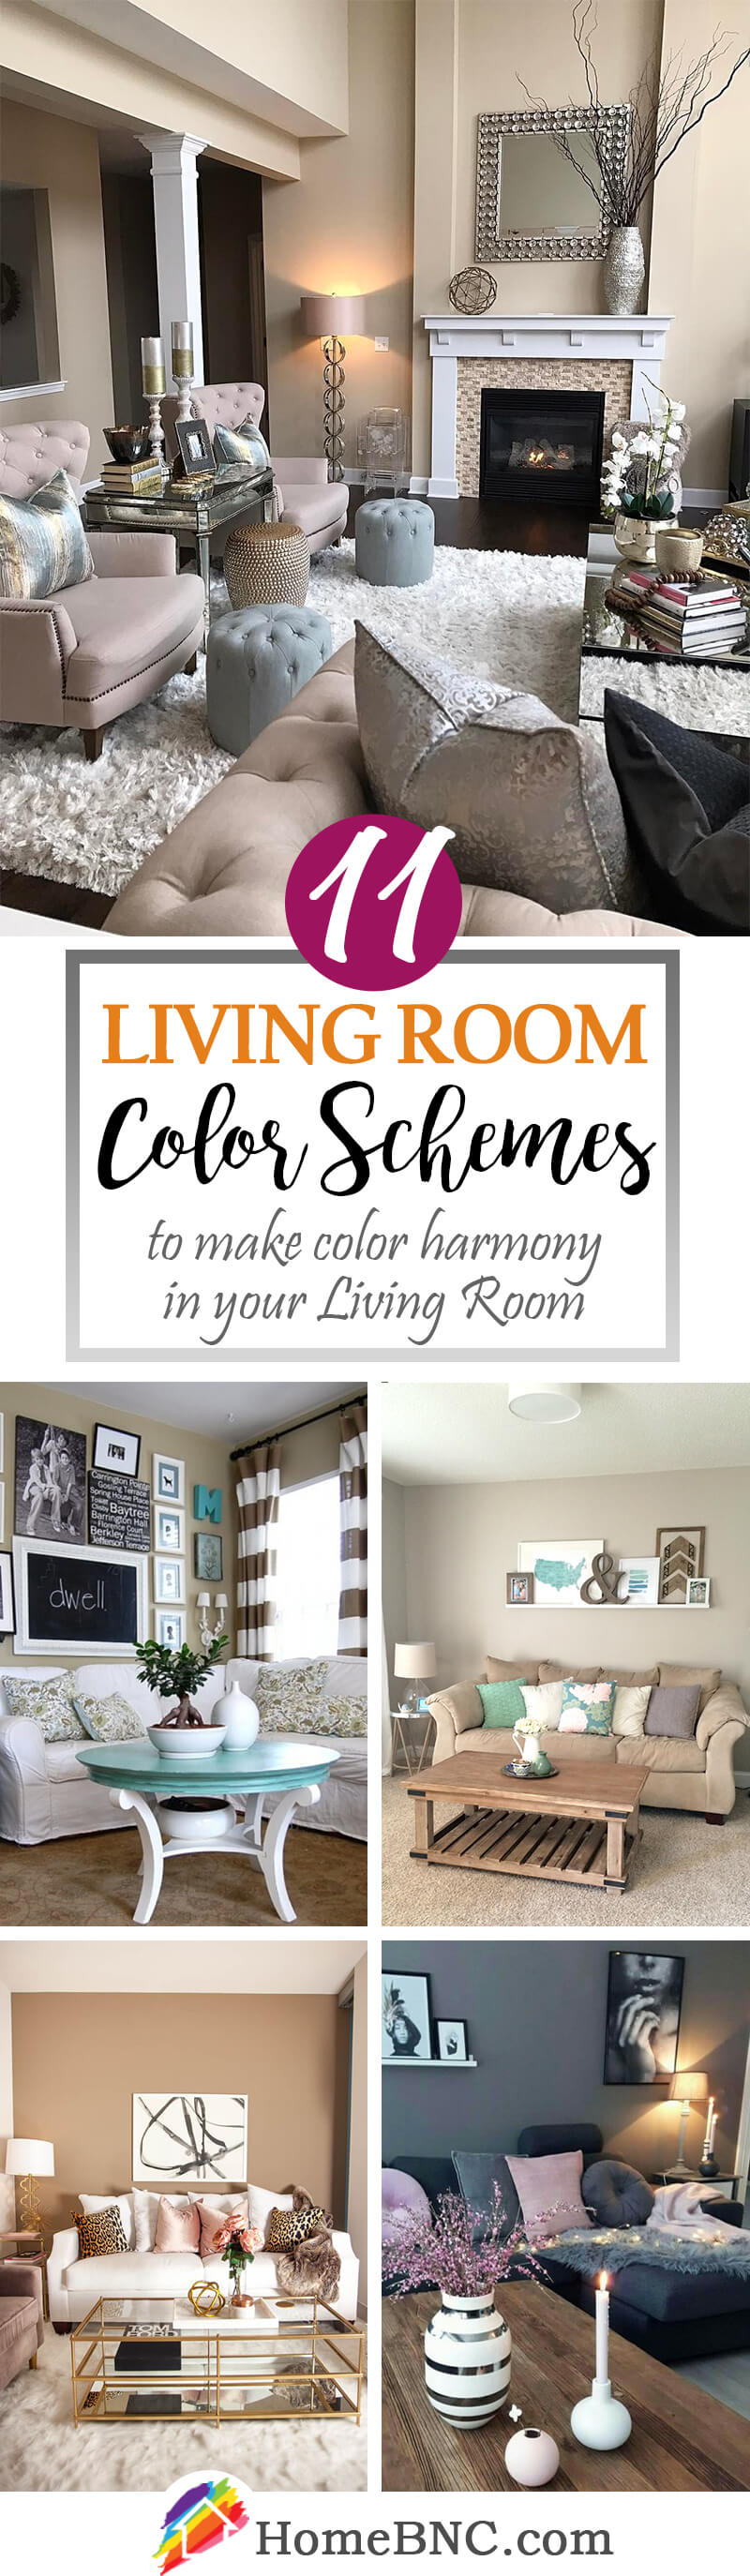 11 Living Room Color Schemes To Make Your Living Room Cozy